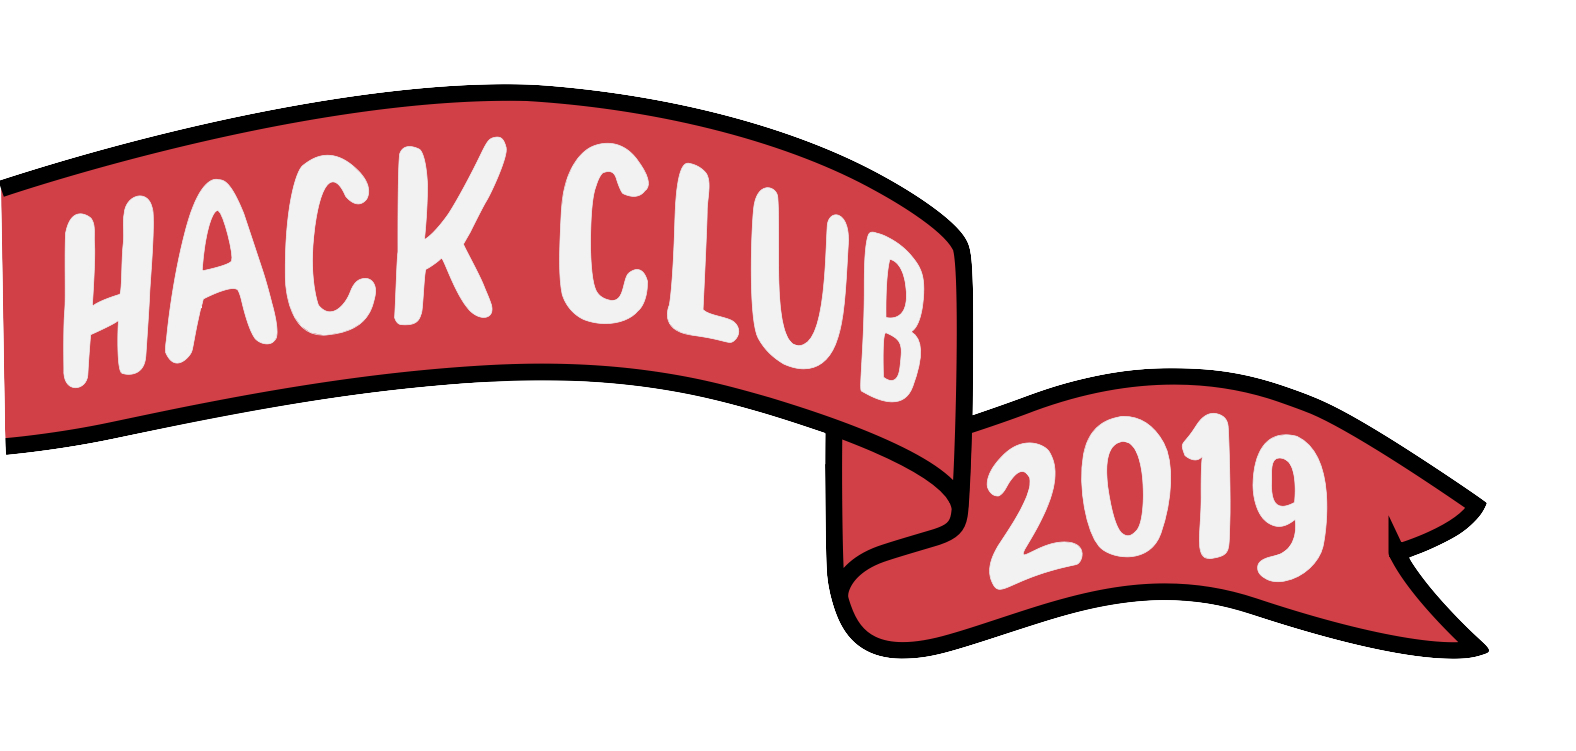 Hack Club banner